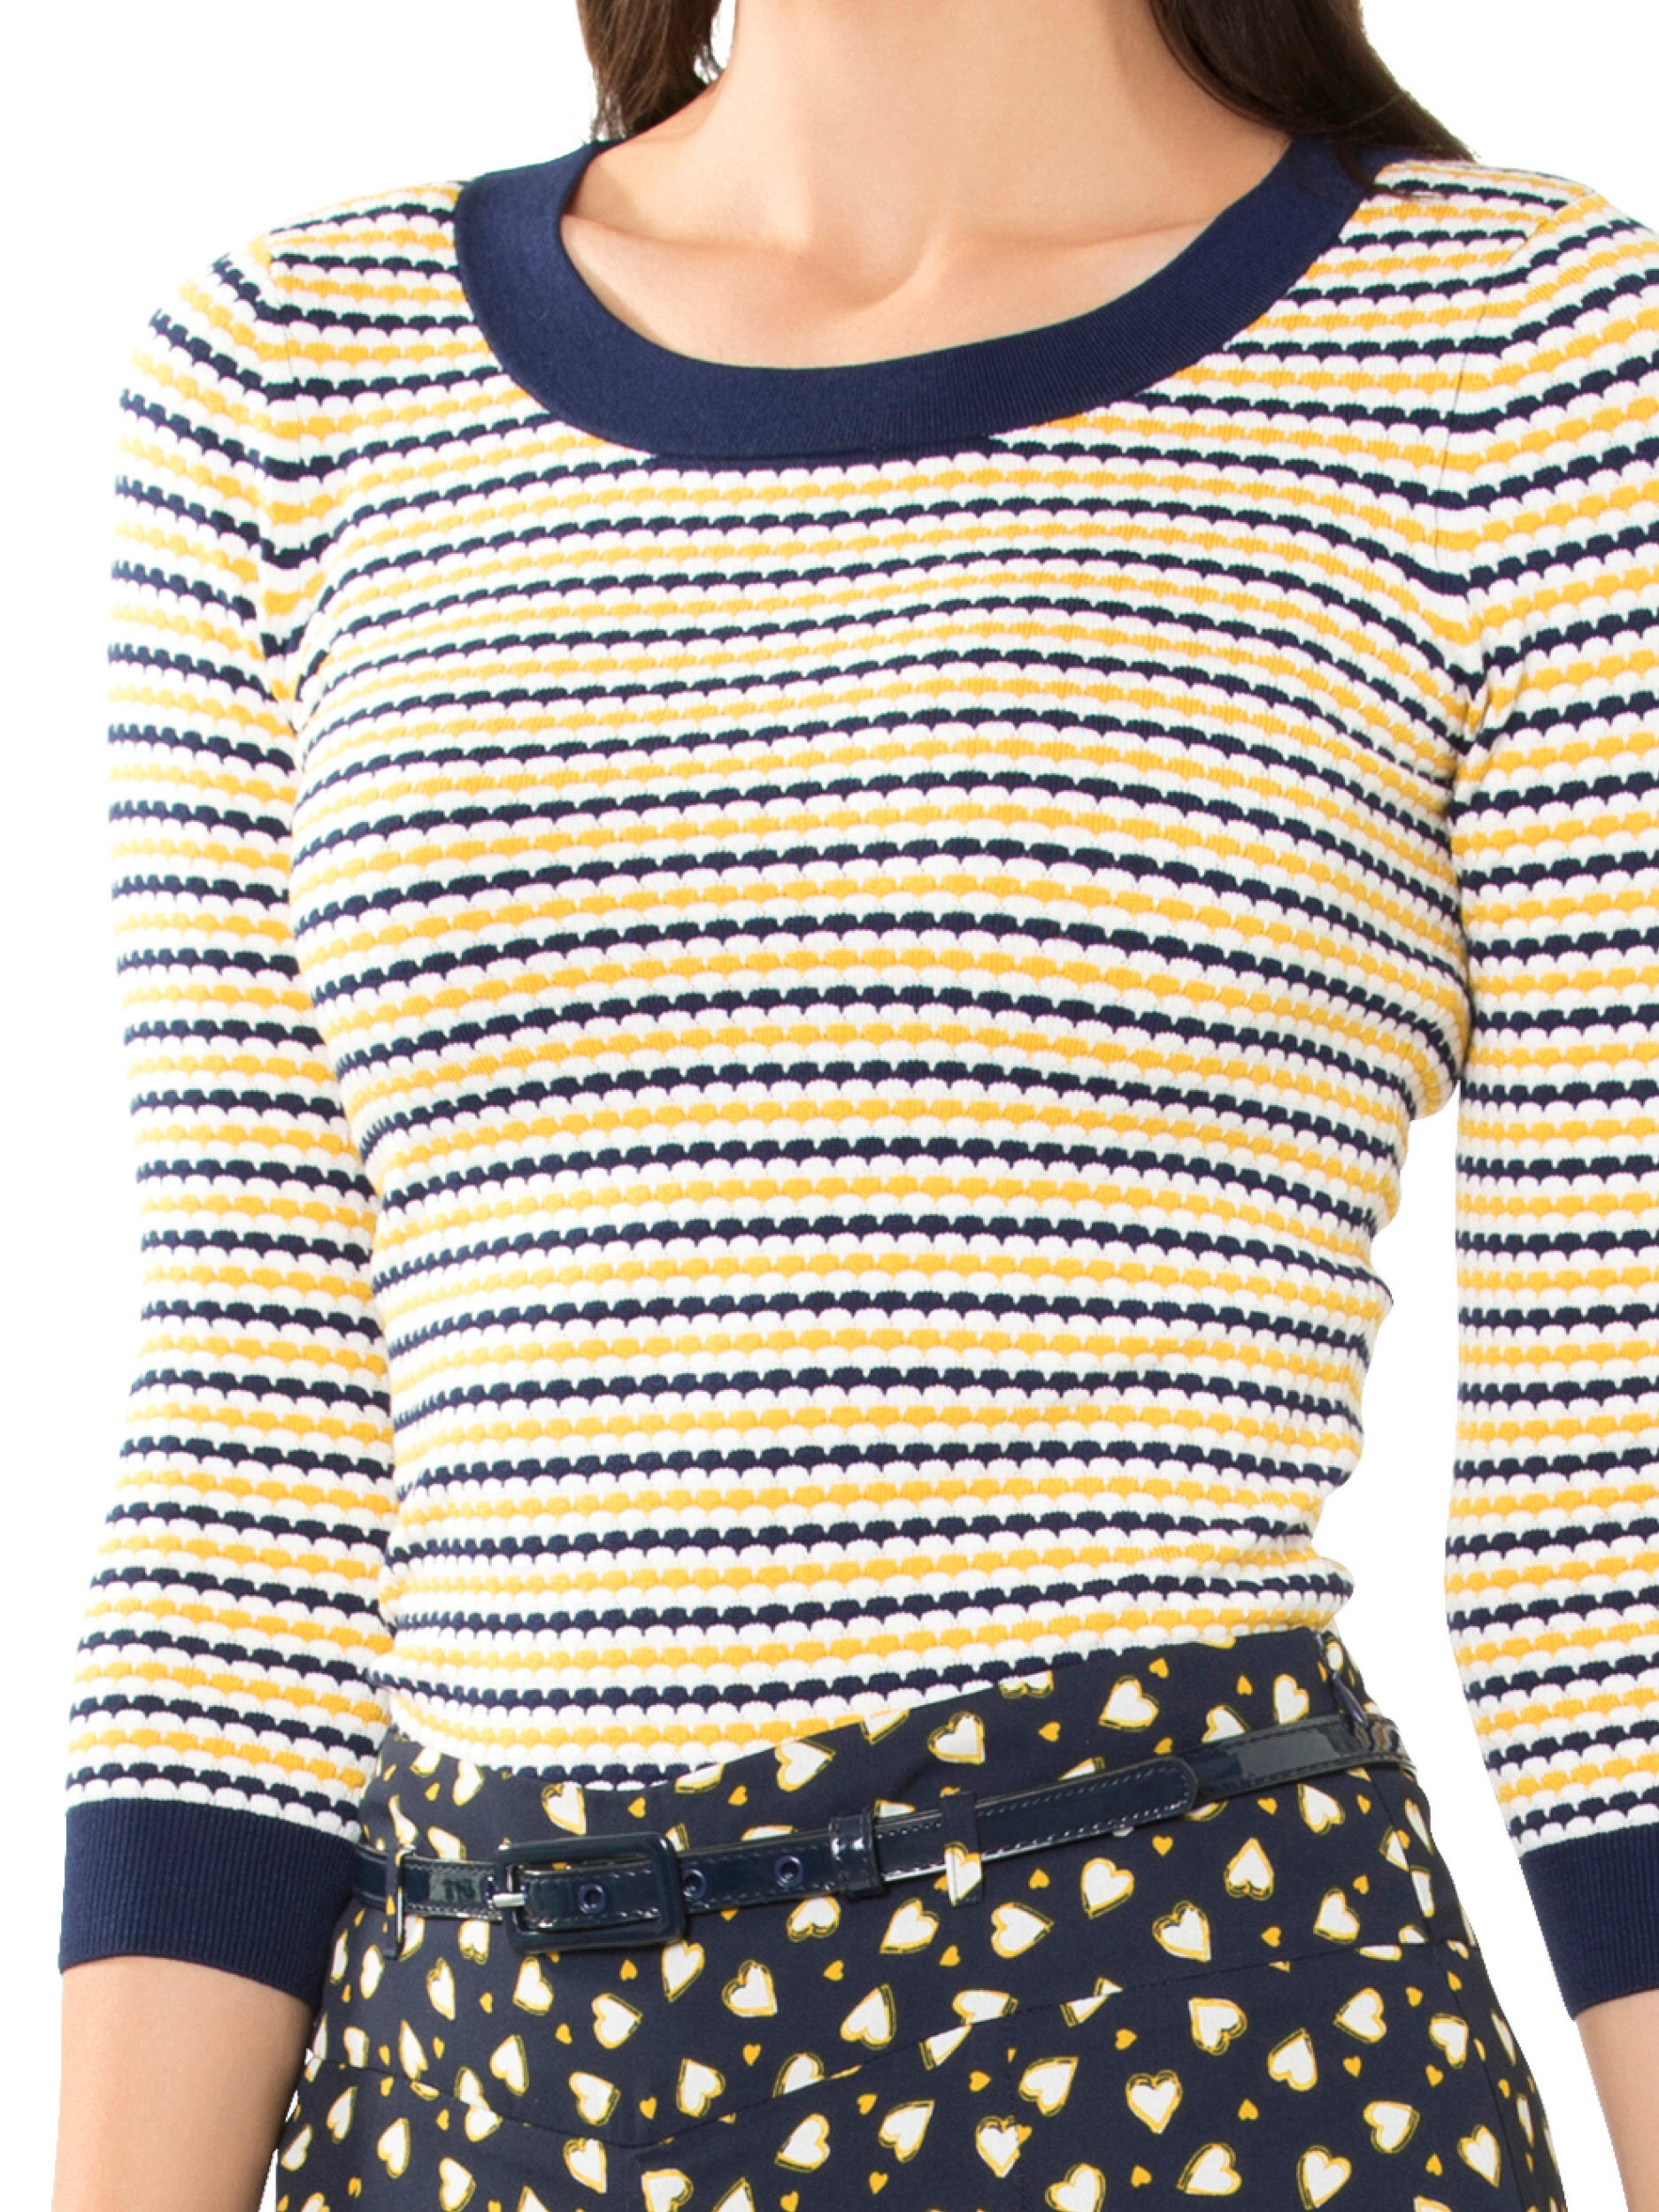 Lemoncello Jumper